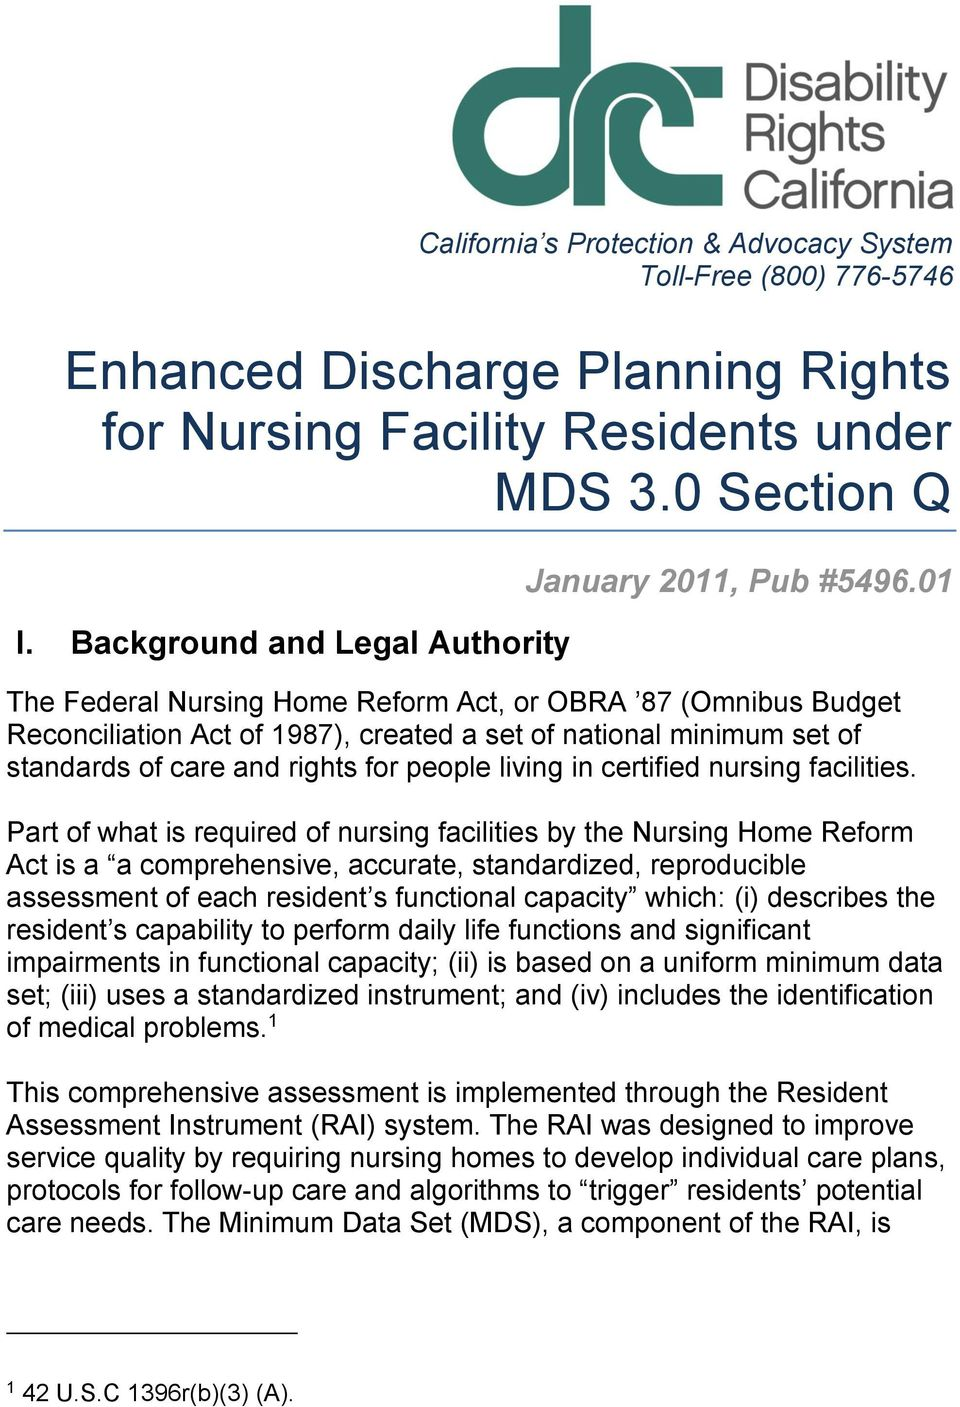 01 The Federal Nursing Home Reform Act, or OBRA 87 (Omnibus Budget Reconciliation Act of 1987), created a set of national minimum set of standards of care and rights for people living in certified